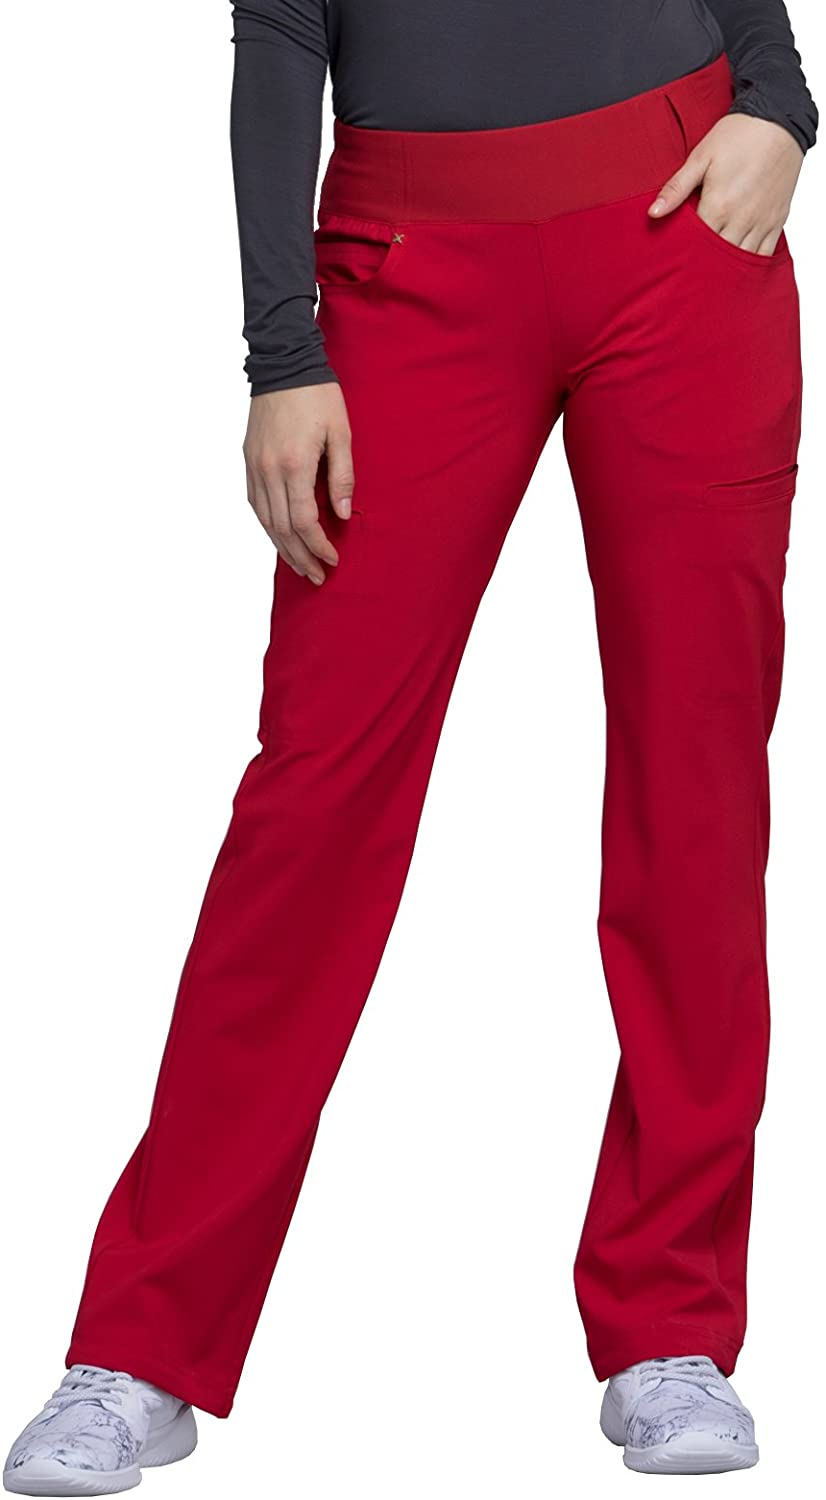 CHEROKEE iflex Mid Rise Straight Leg Pull-on Pant, CK002, XXS, Red